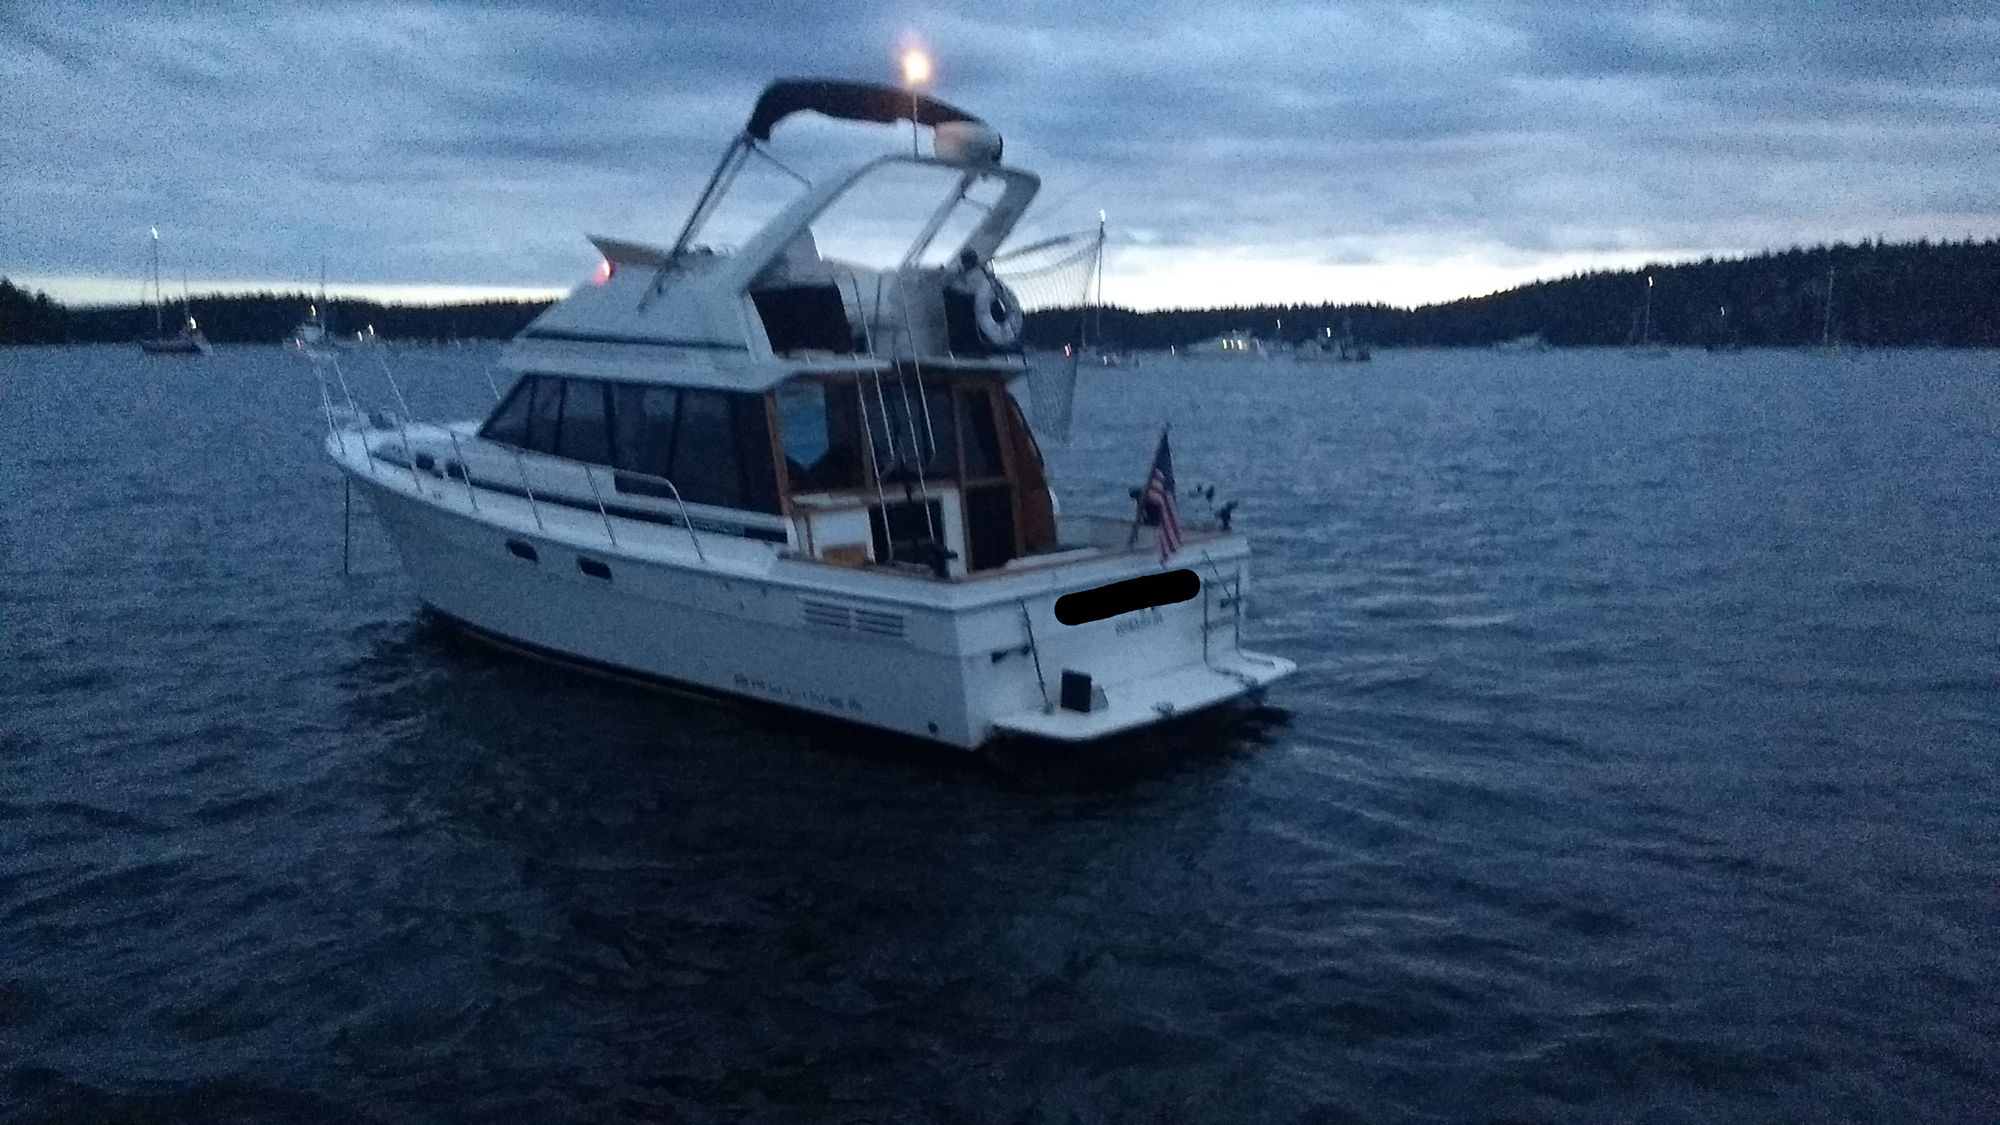 A medium-sized white power boat at dusk with its anchor light on.